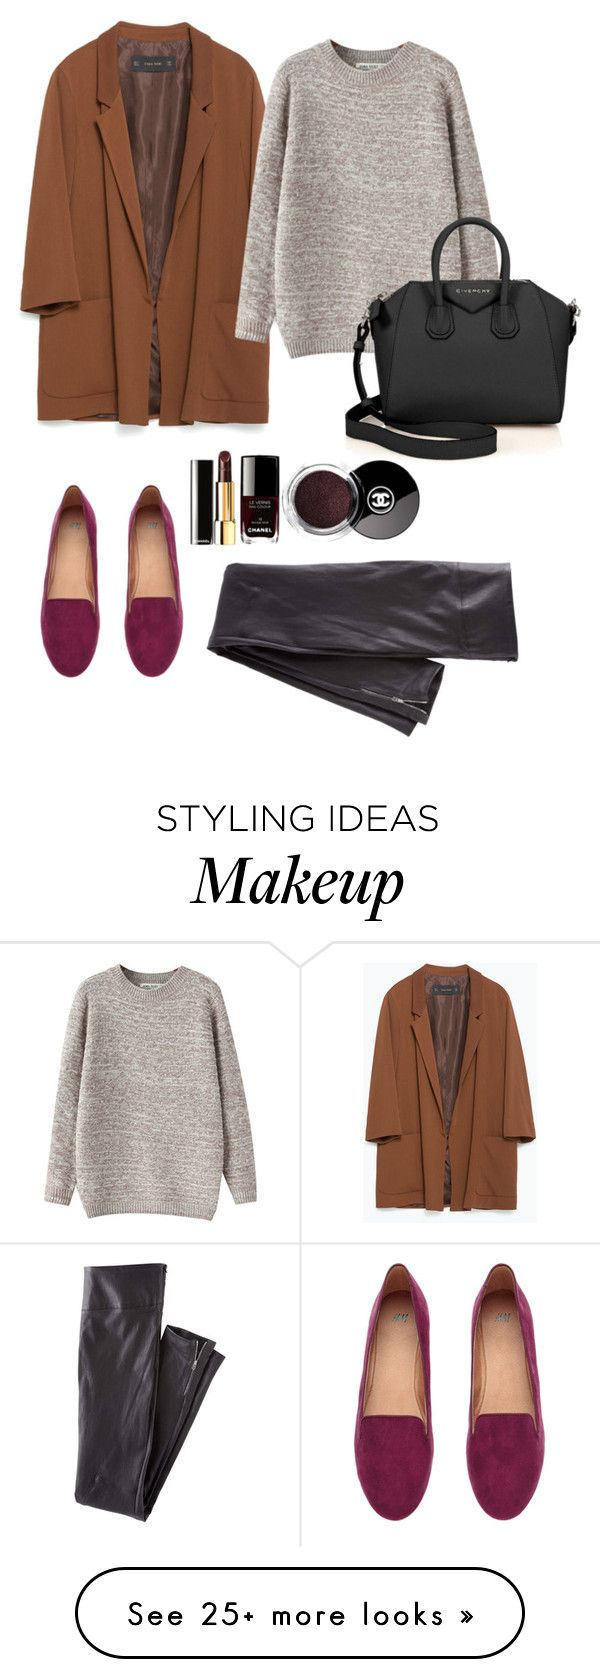 """Untitled #15"" by kyukhno on Polyvore featuring Zara, Chicnova Fashion, H&M, Givenchy and Wrap"